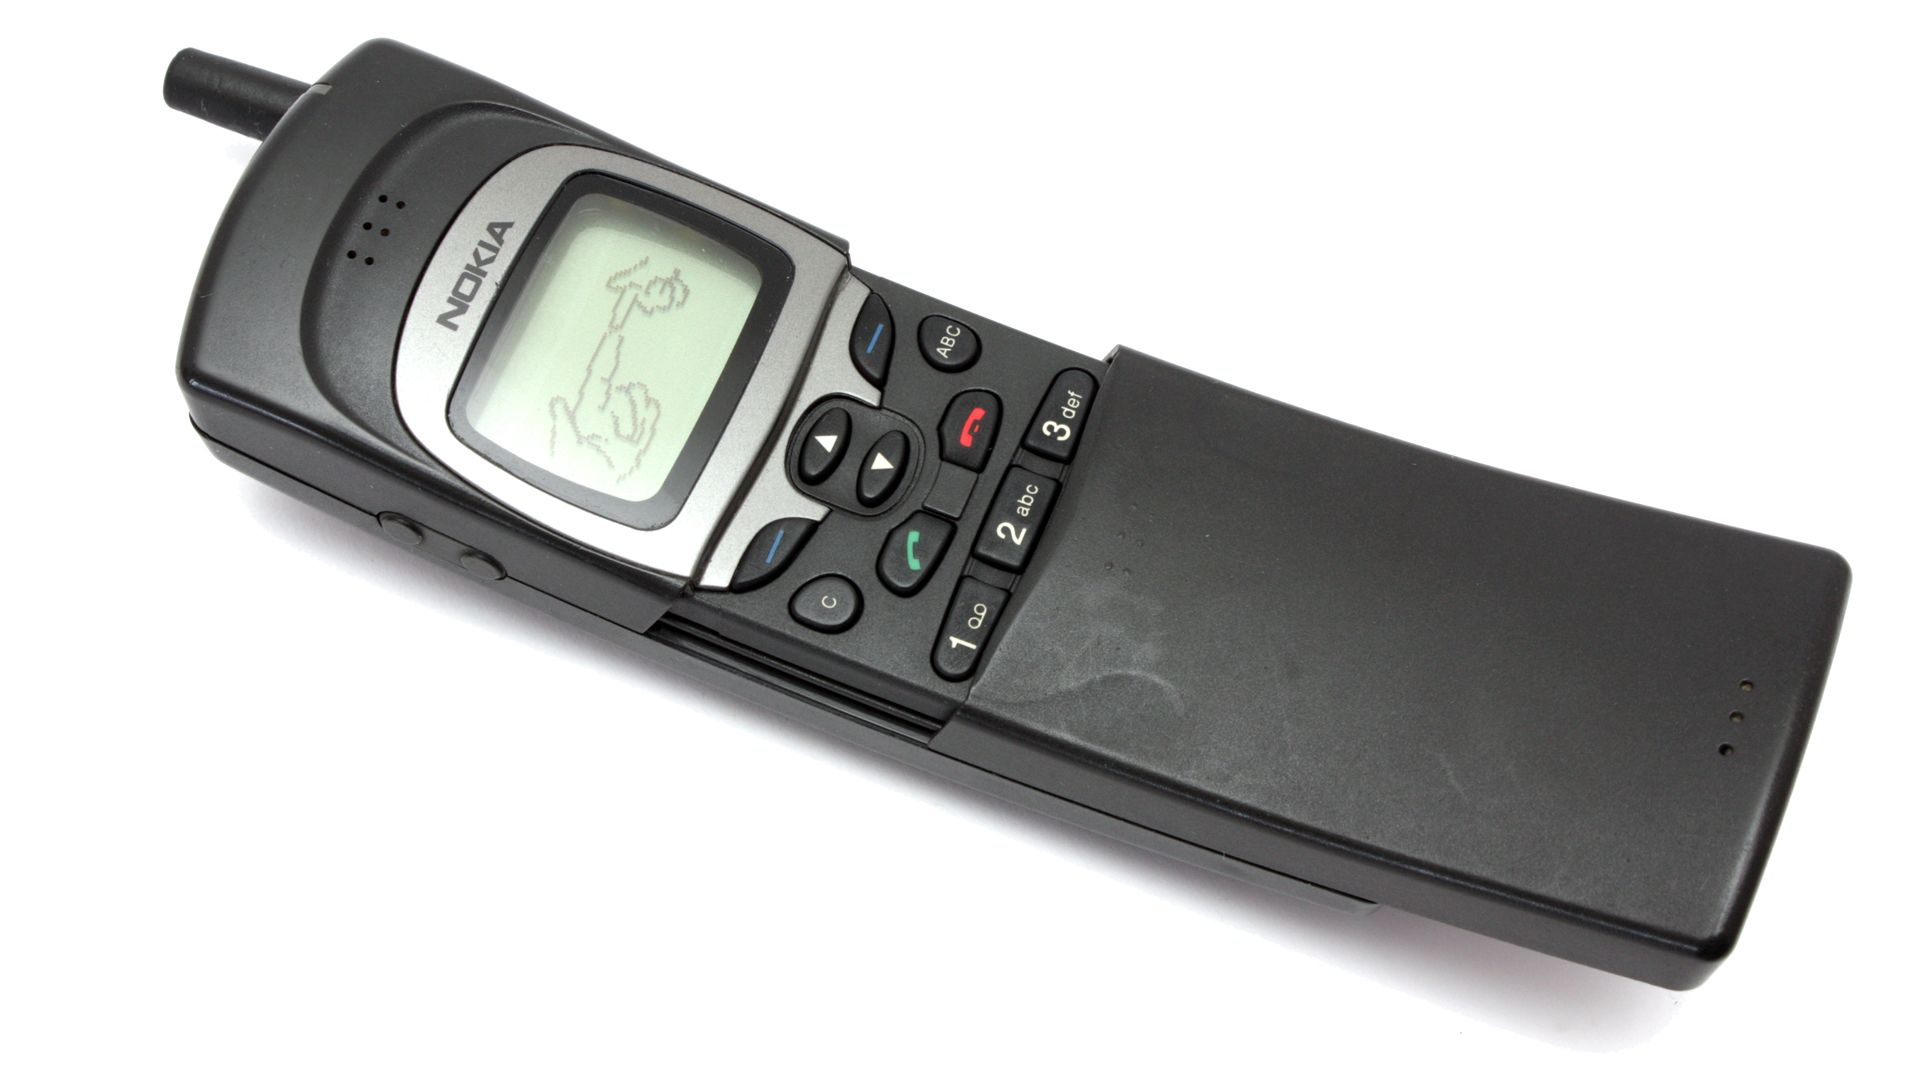 The Nokia 8110 8110i In This Pic Aka Banana Phone Or Matrix 9300 Service Manual Released 1996 It Was Among First Sliders Ever And Had A Wicked